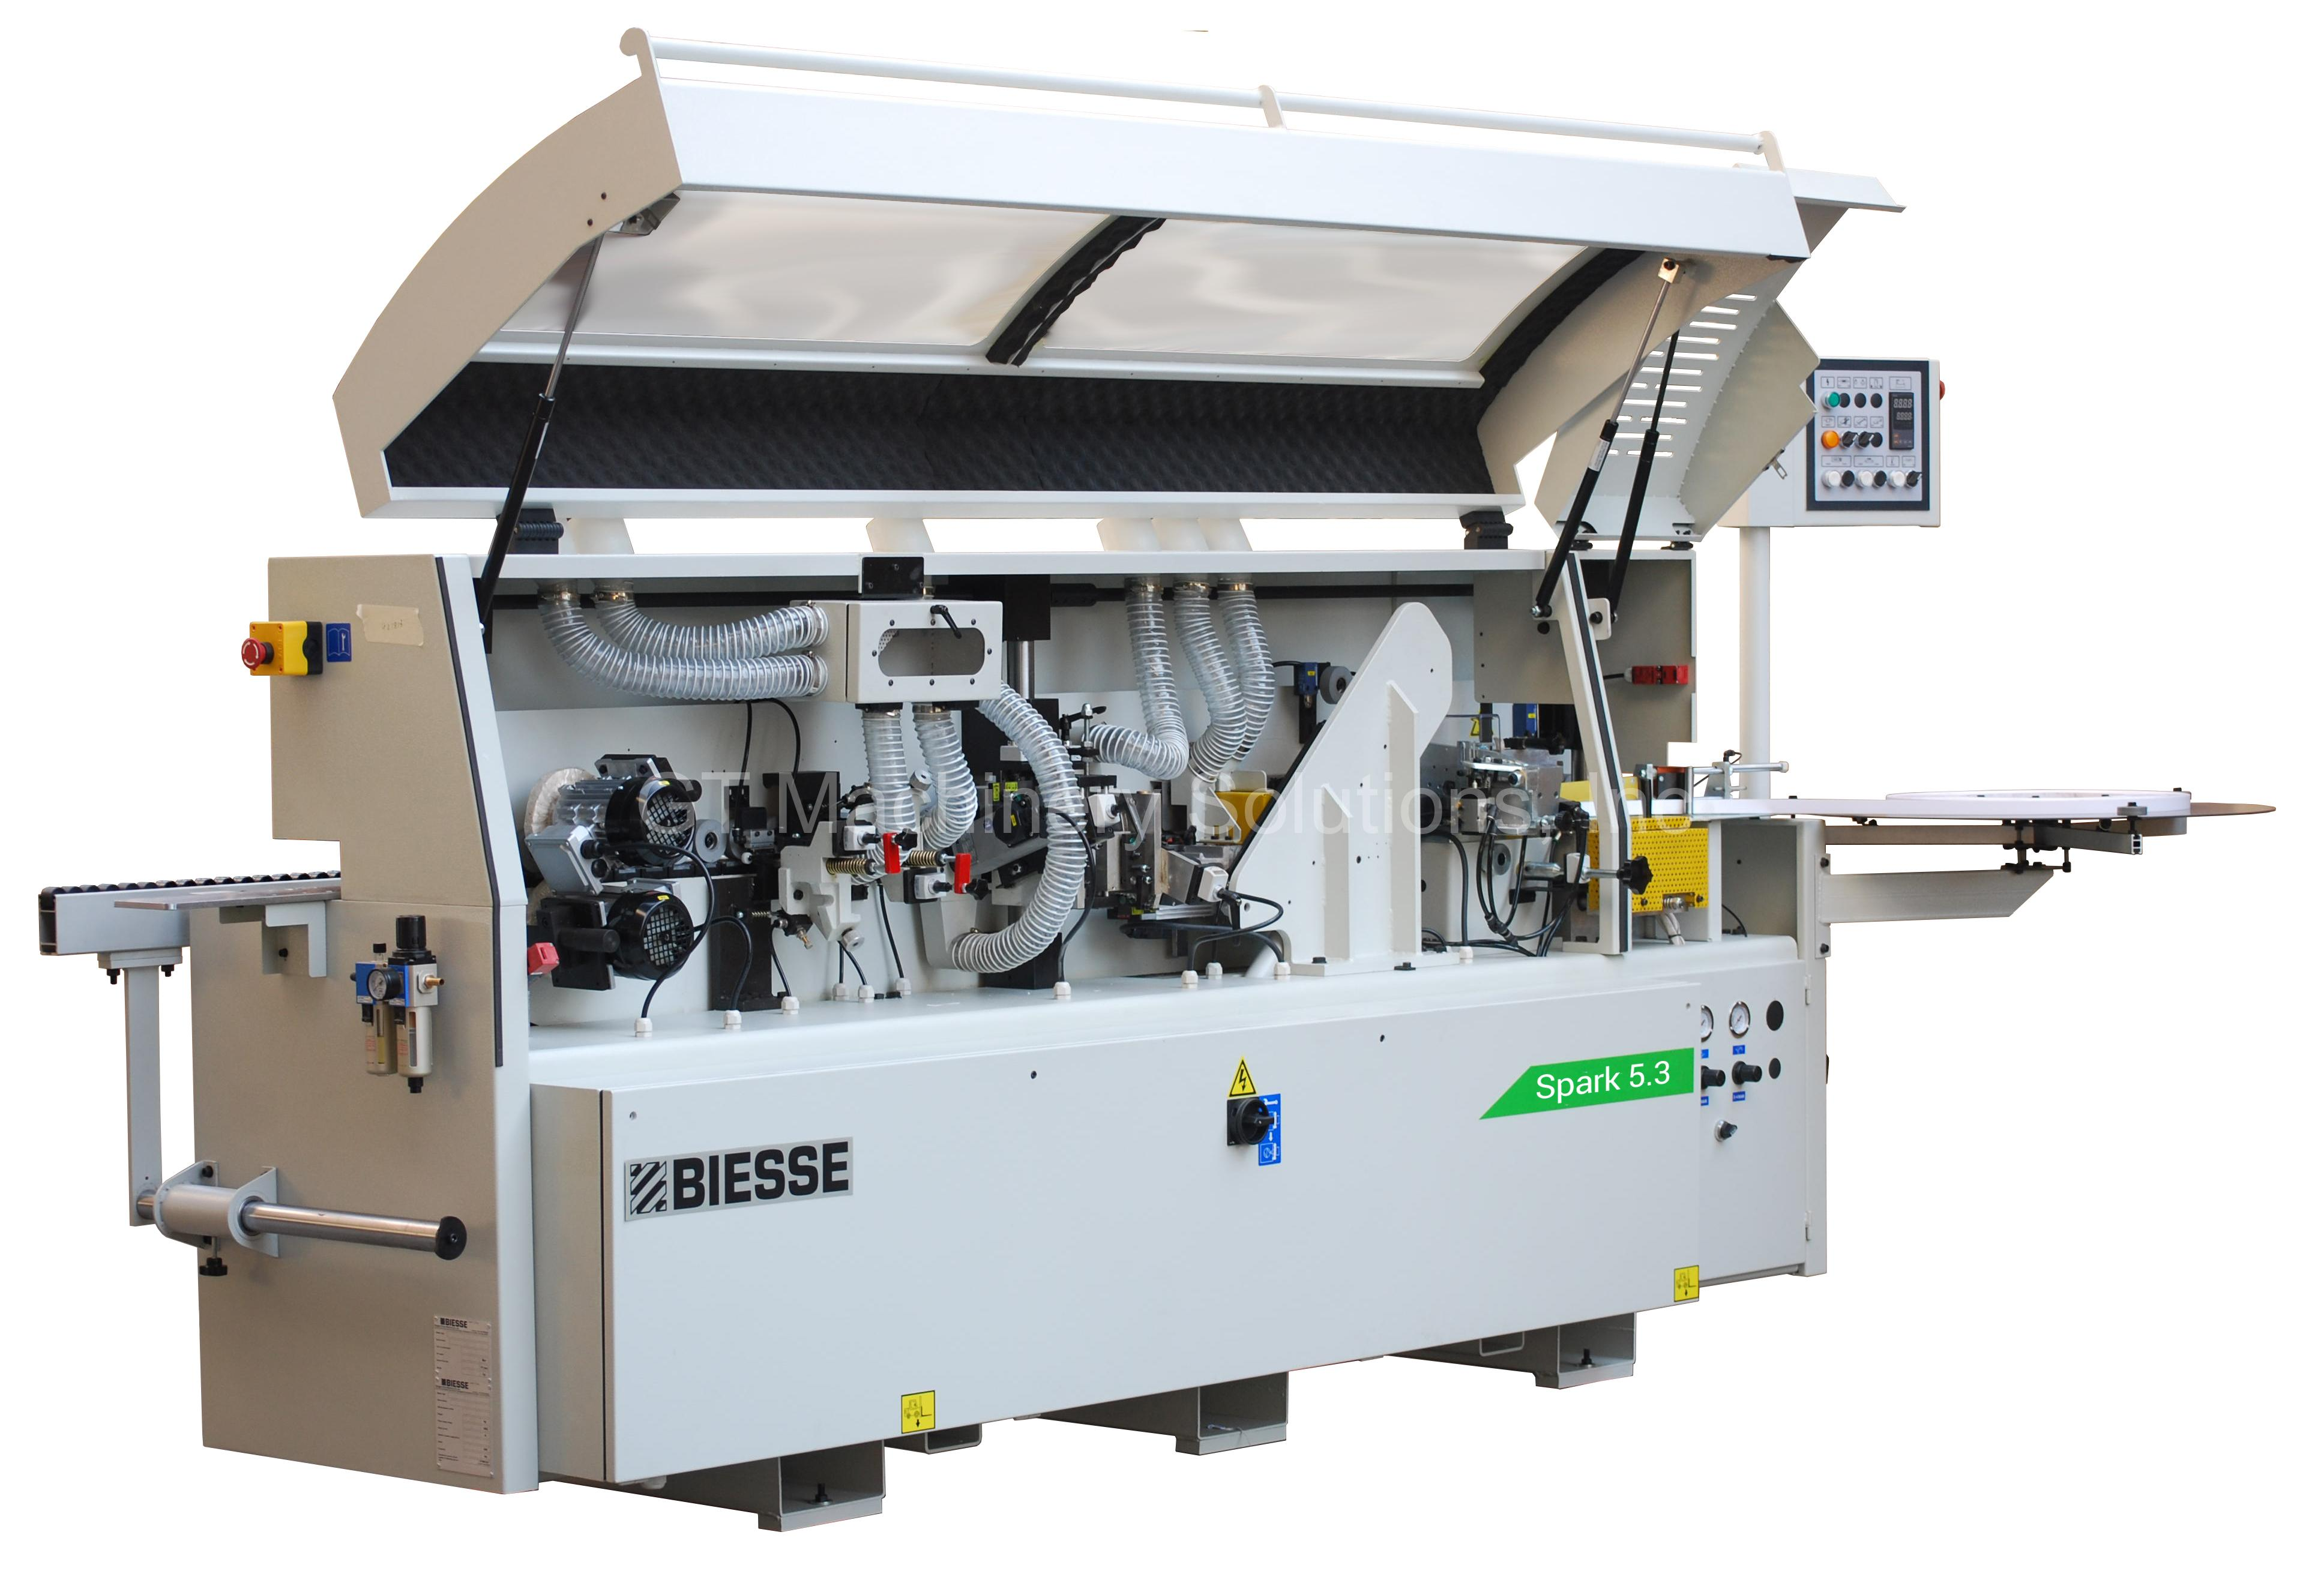 New Spark 5 3 Edgebander – GT Machinery Solutions, Inc